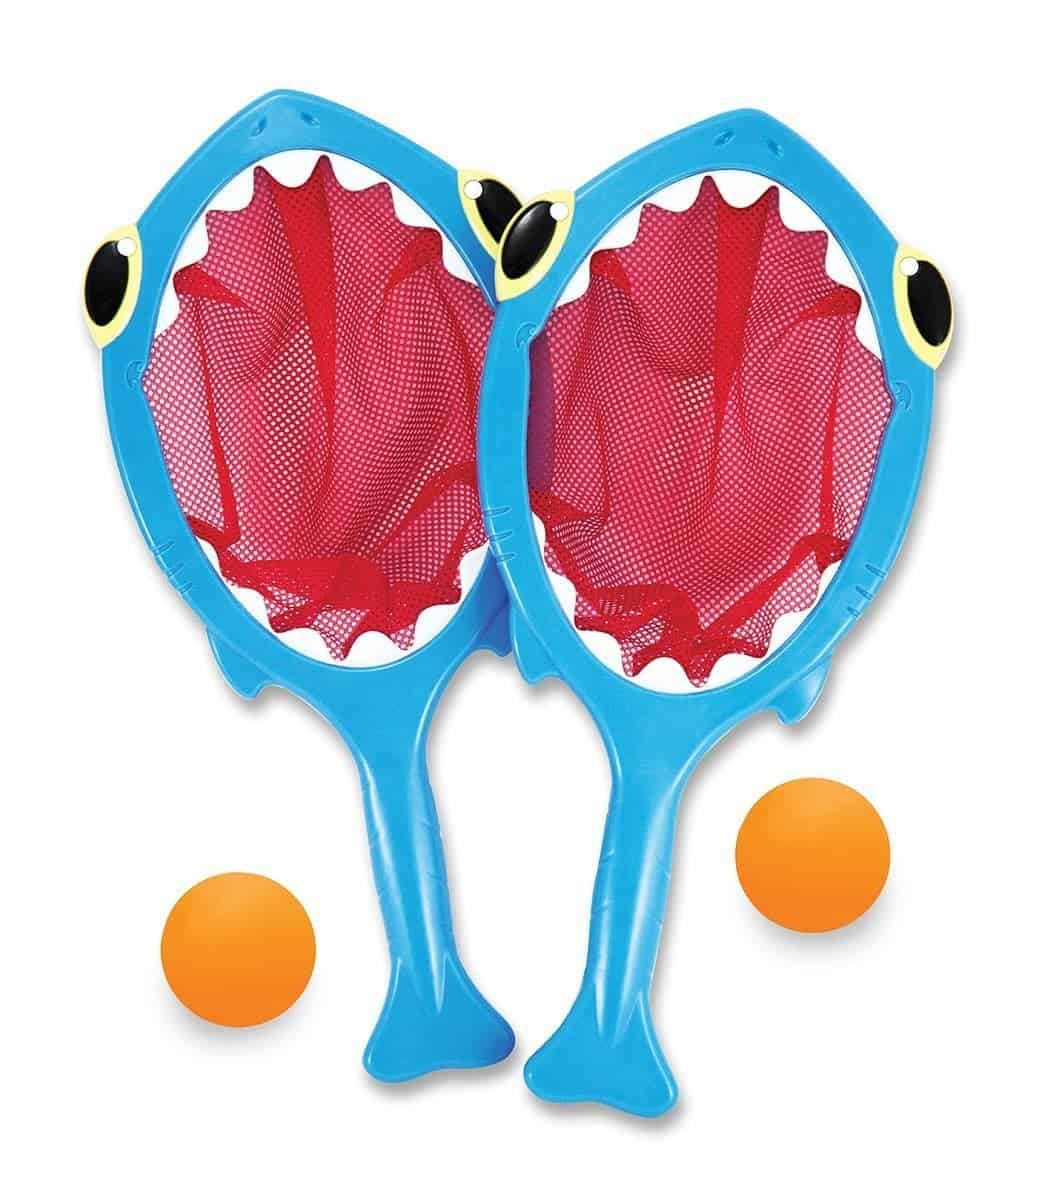 10+ Best Games and Toys for a Fun Day at the Beach: Shark Toss & Catch | www.thepinningmama.com